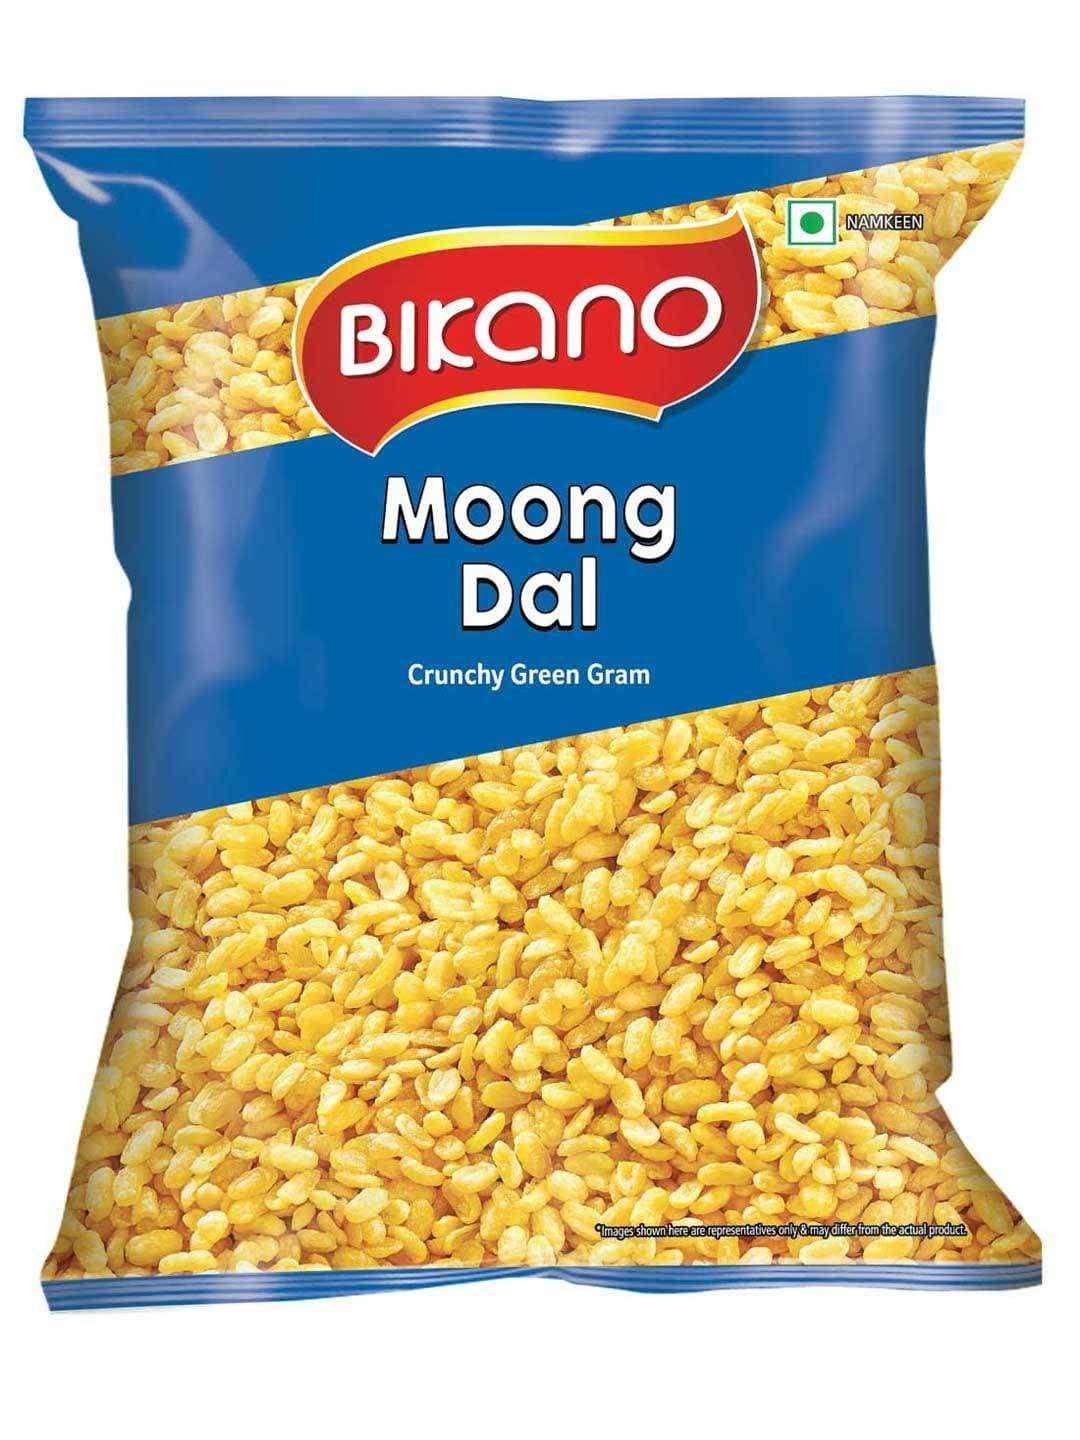 Bikano Moong Dal Salted